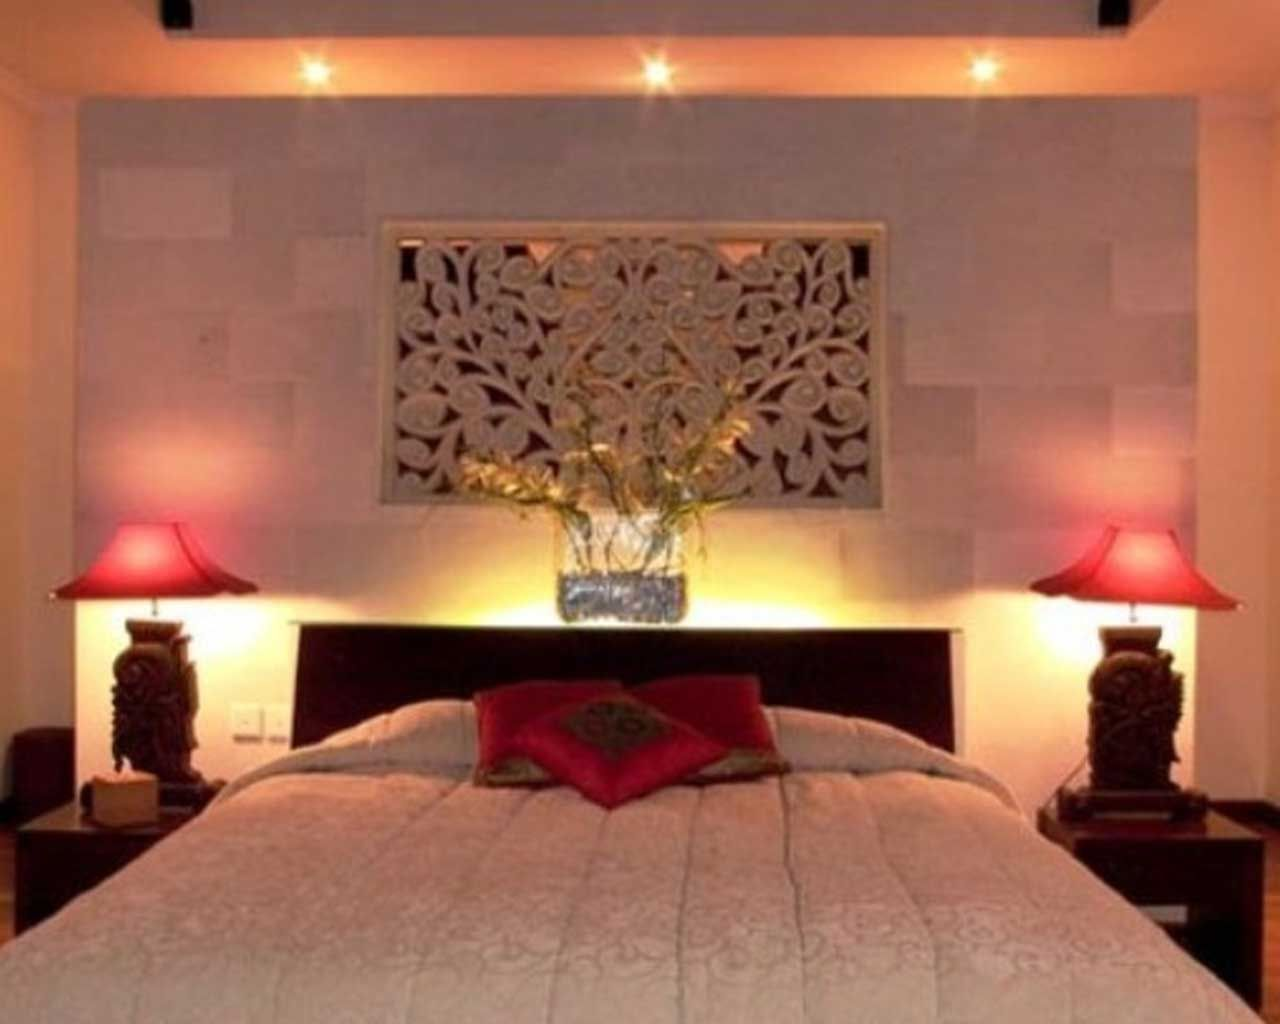 Bedroom. Romantic Bedroom Lighting Ideas Feats Black Headboard And Red Accent Table Lamp For ...